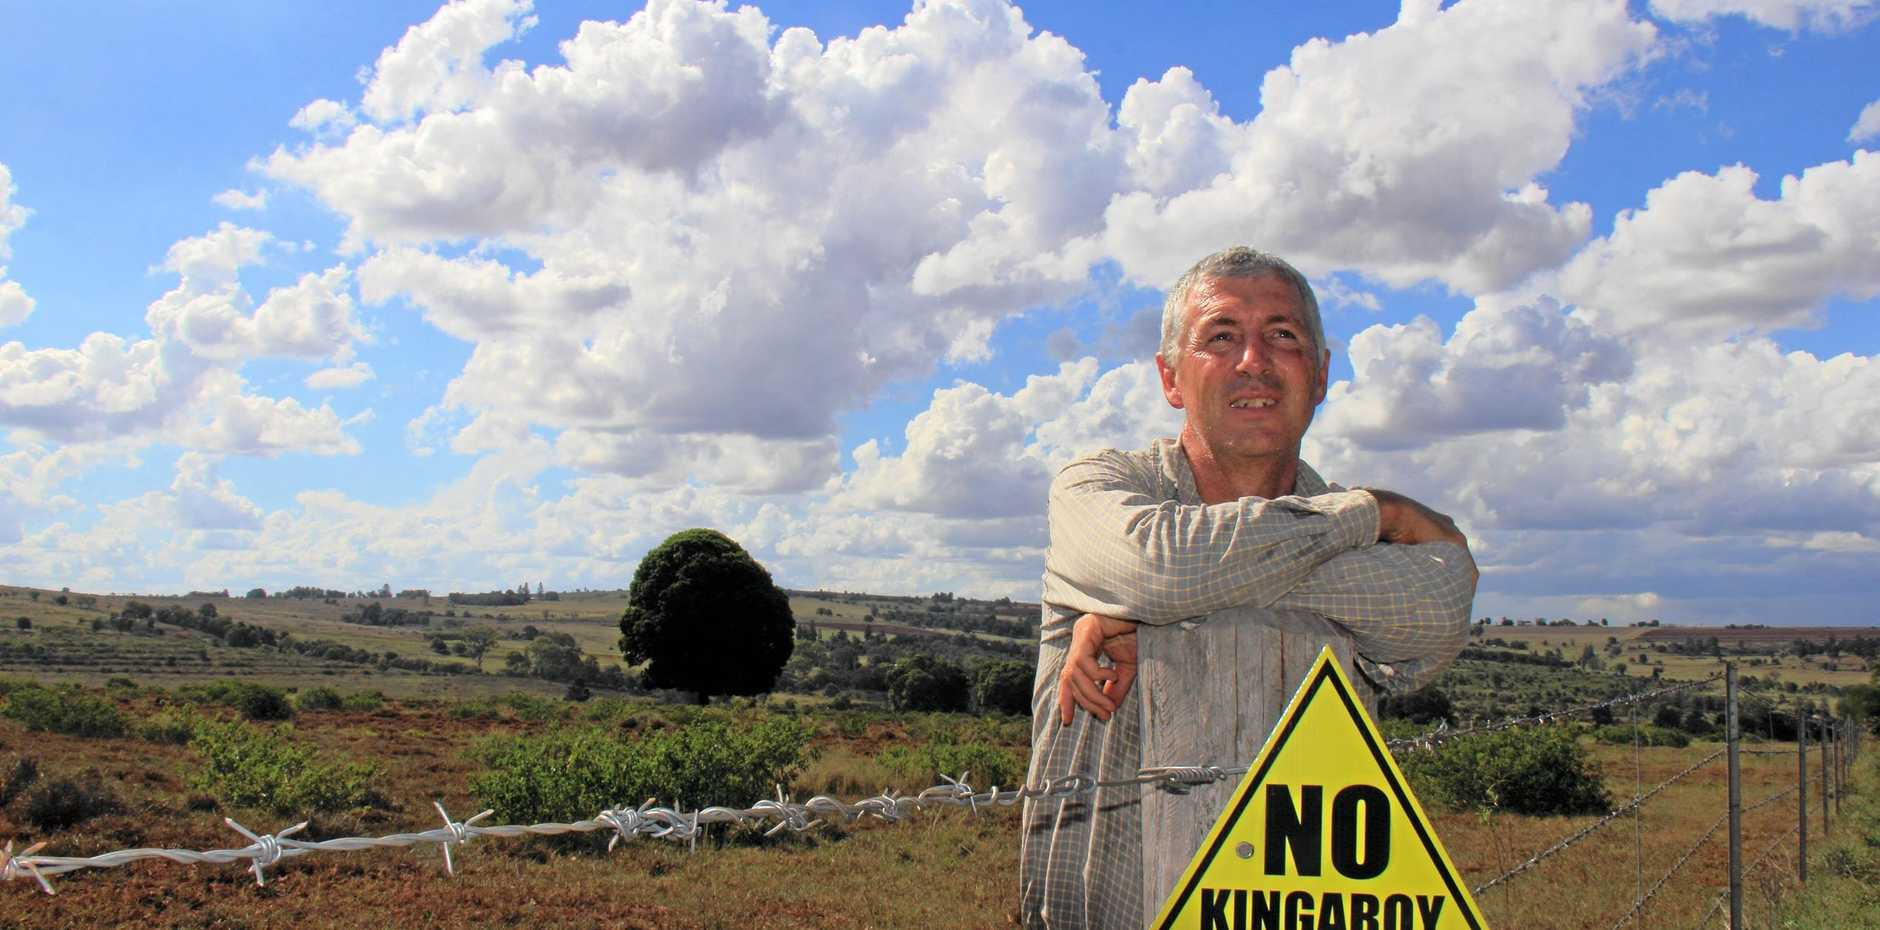 STAY INFORMED: John Dalton shares his concerns about the Kingaroy mine site and rail line.